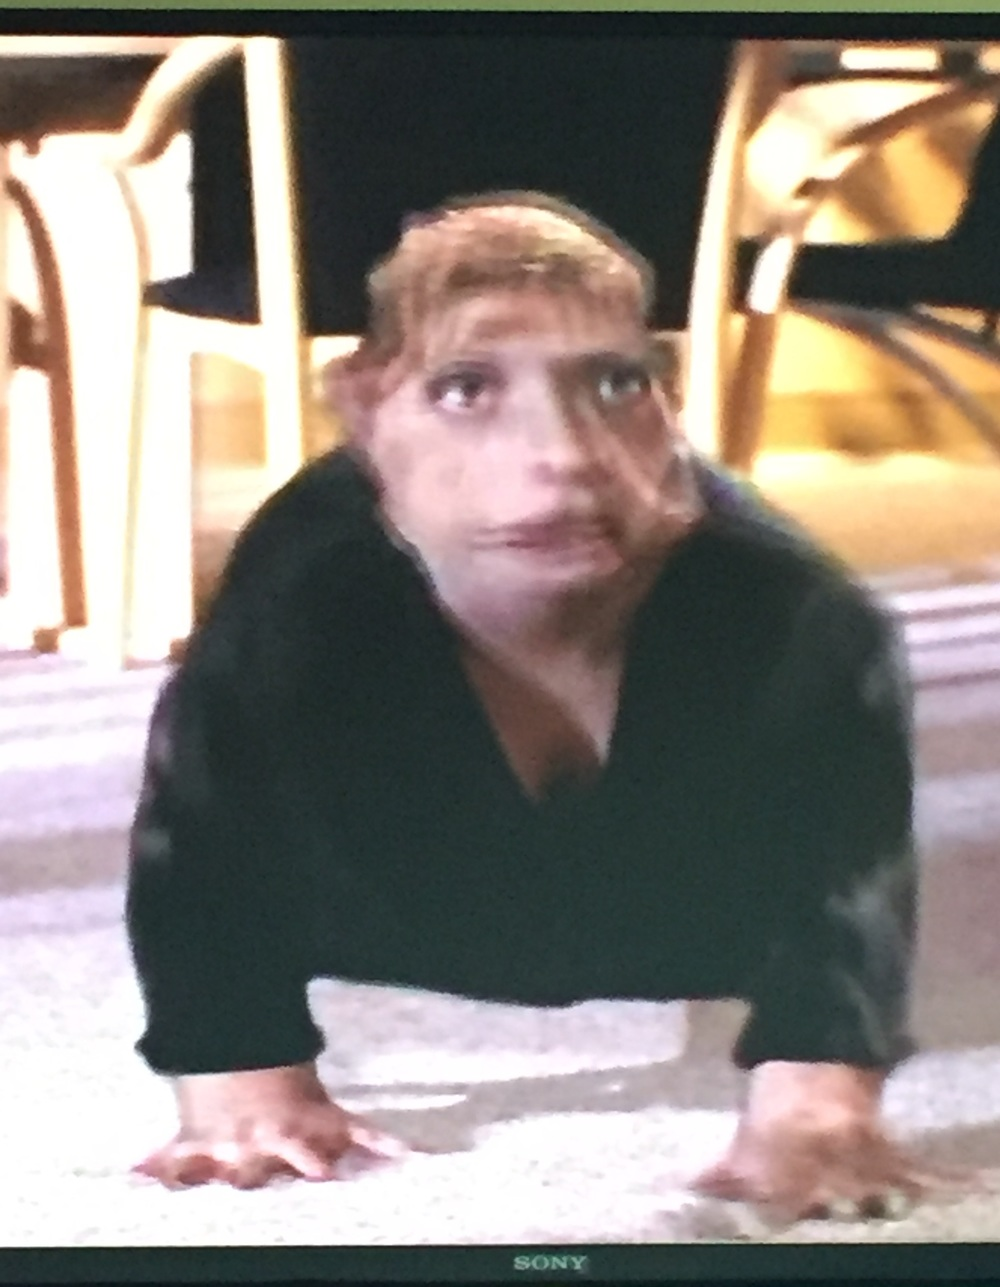 If you don't think this morph was the funniest, you're wrong.